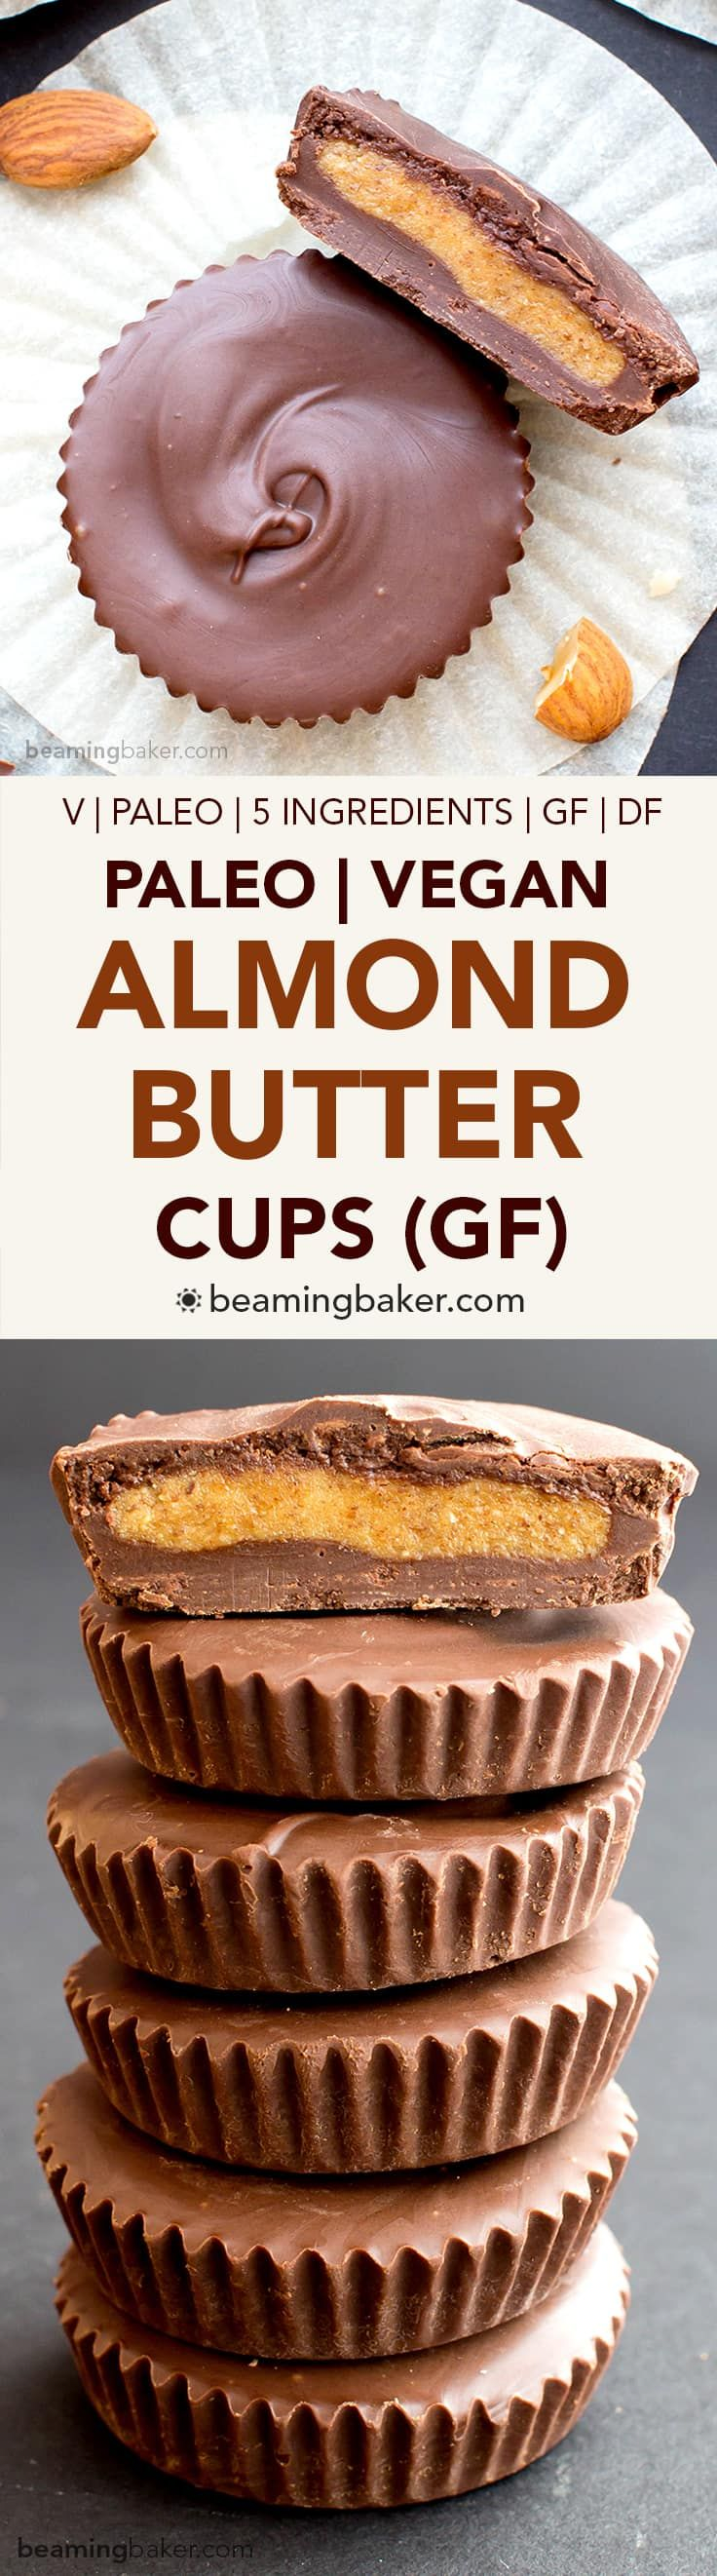 Paleo Almond Butter Cups (V, GF, DF): a 5 ingredient recipe for rich chocolate cups stuffed with smooth almond butter. Paleo, Vegan, Gluten Free, Dairy Free.